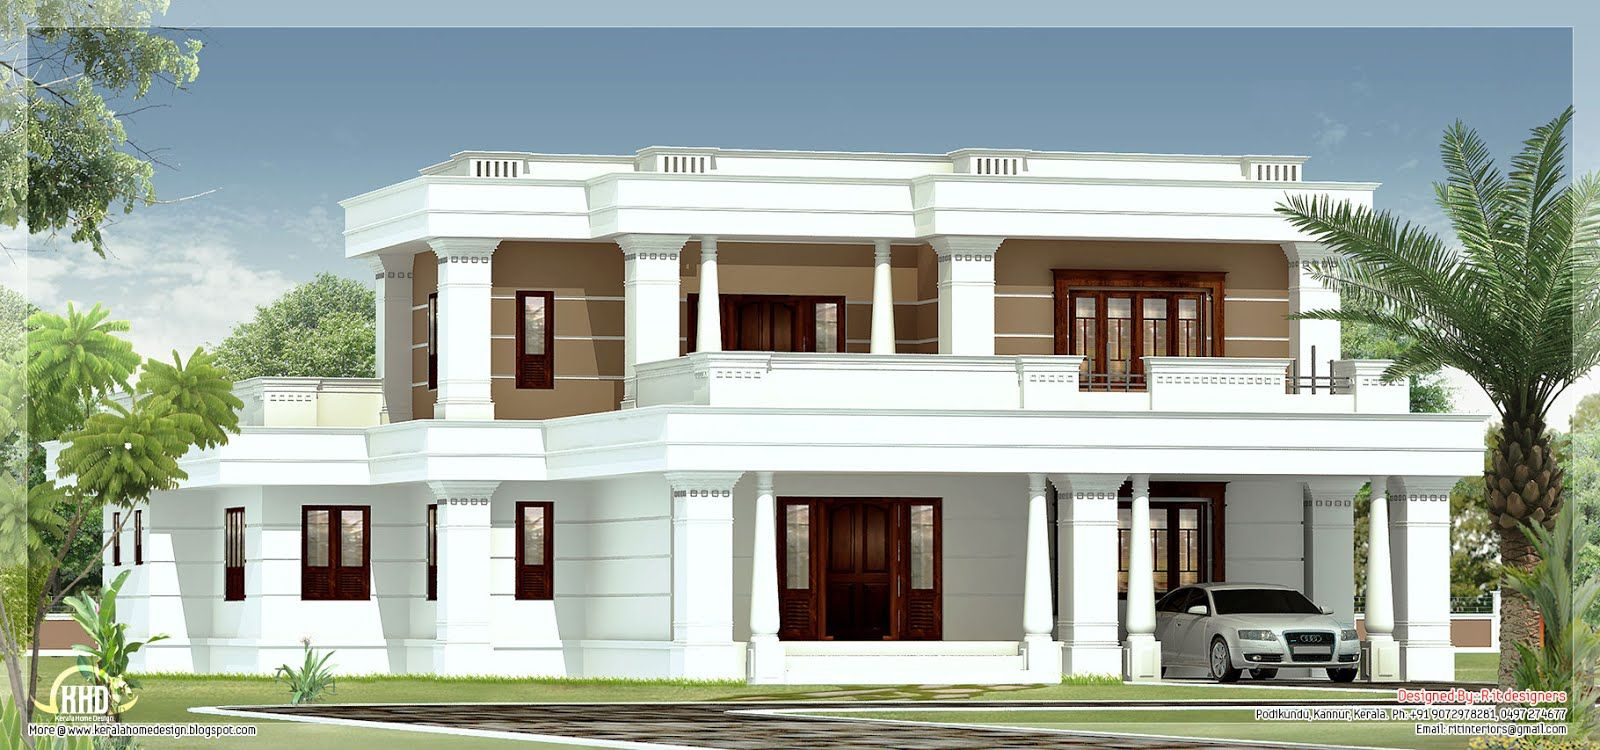 Spanish style villas google search favorite places for Kerala style villa plans